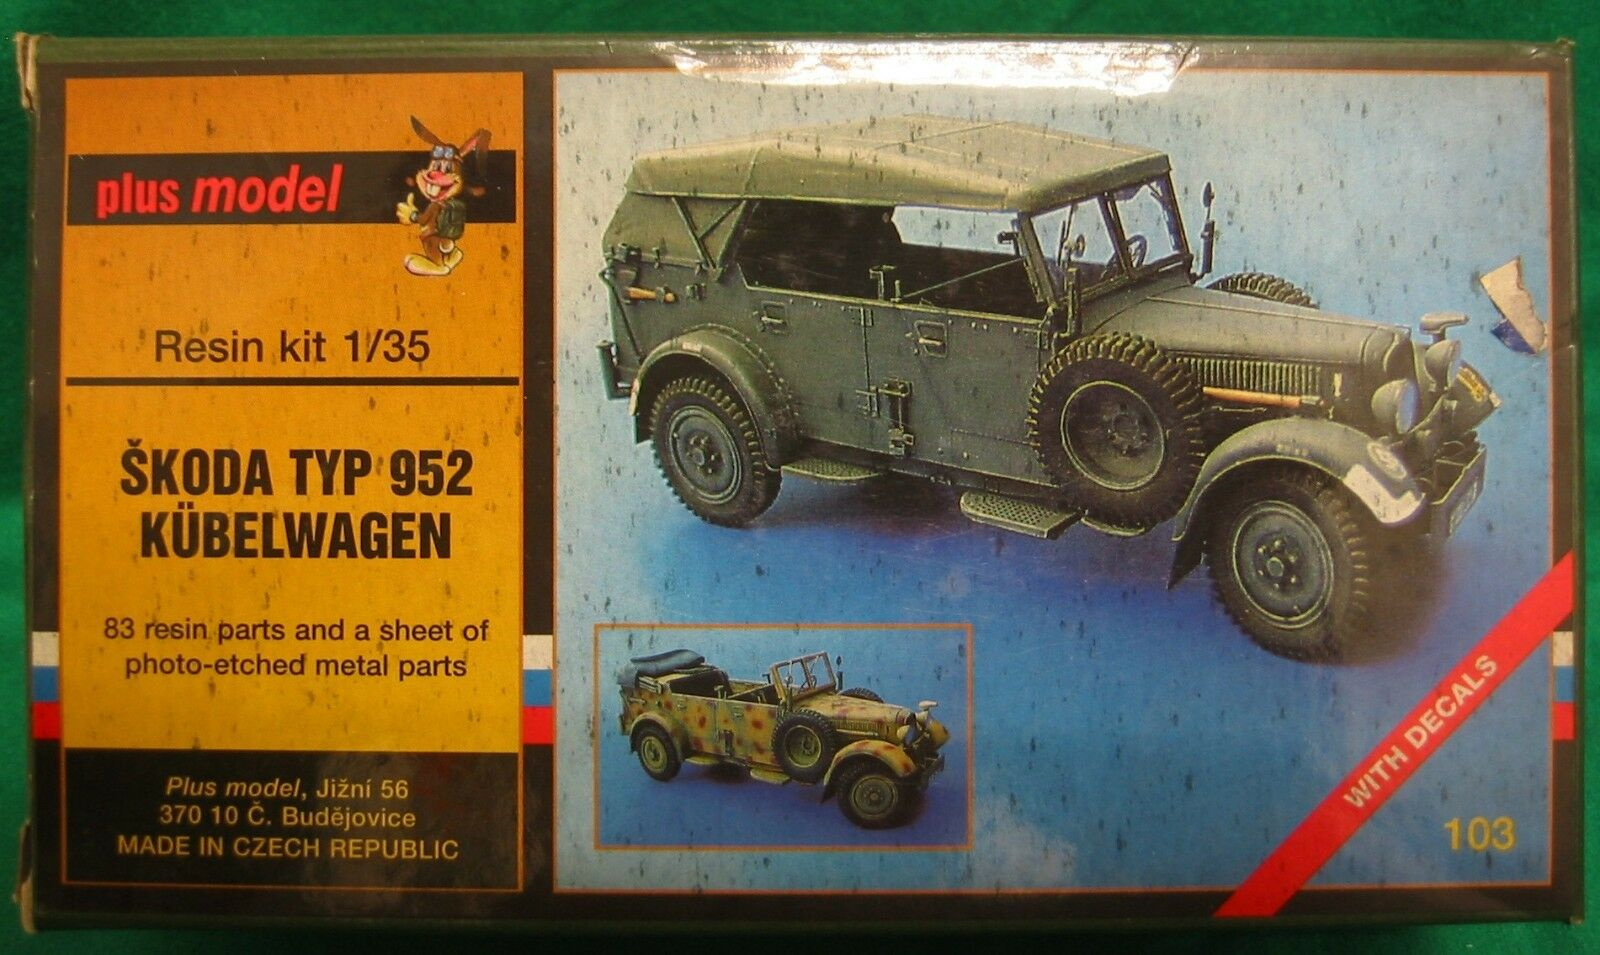 PLUS MODEL 103 SKODA TYP 952 KUBELWAGEN 1 35